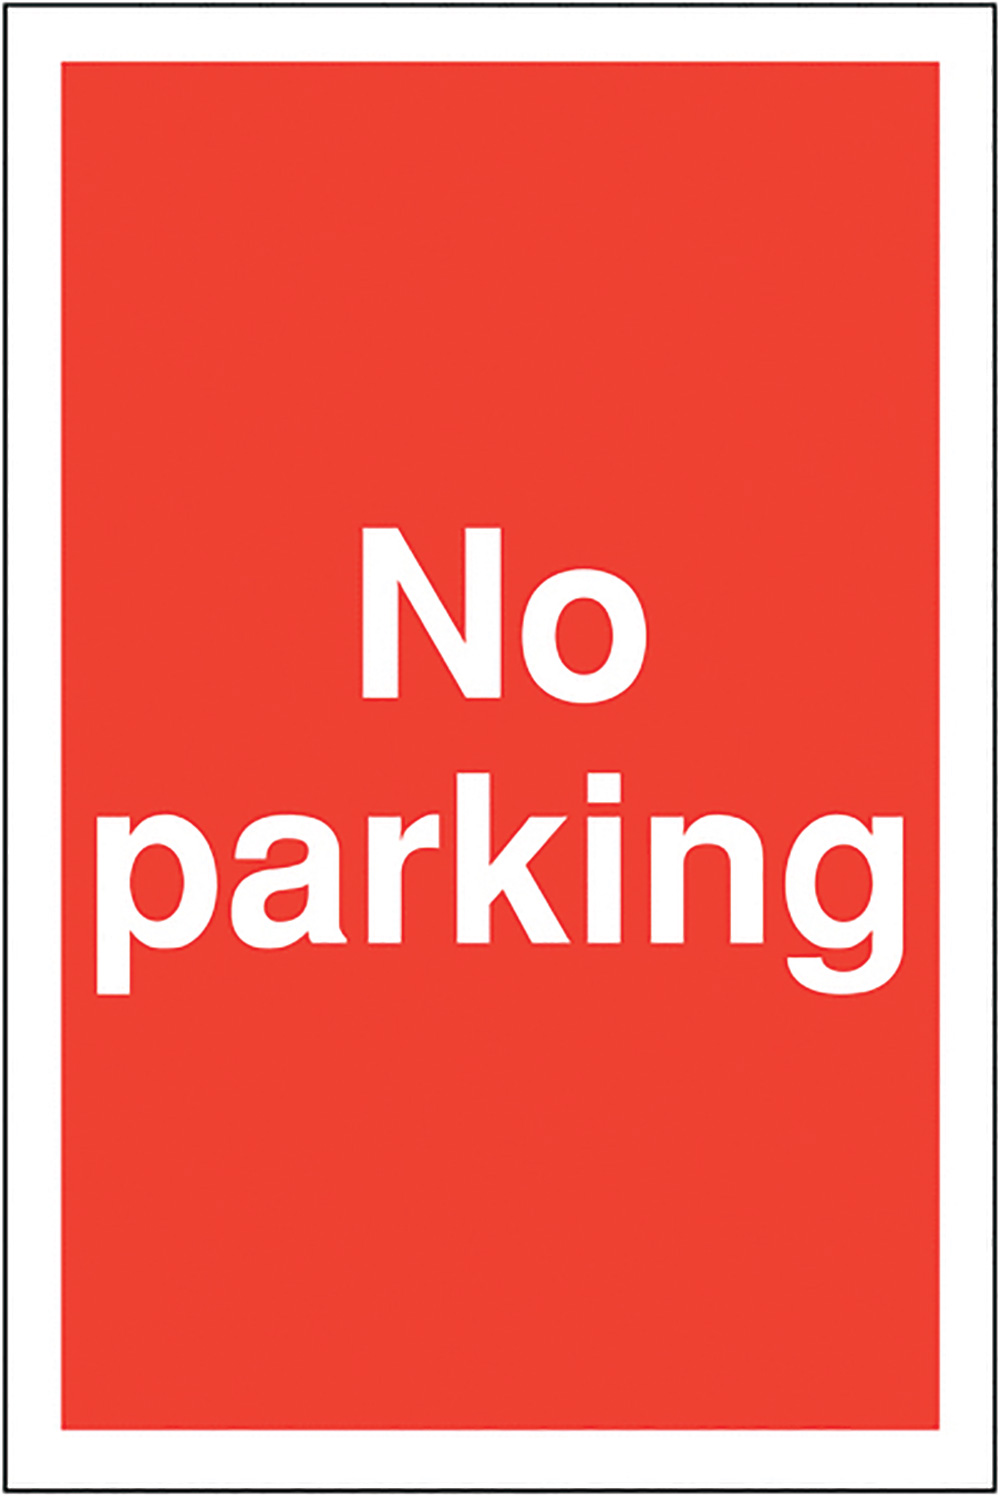 No parking 400x300mm 2mm Polycarbonate Safety Sign